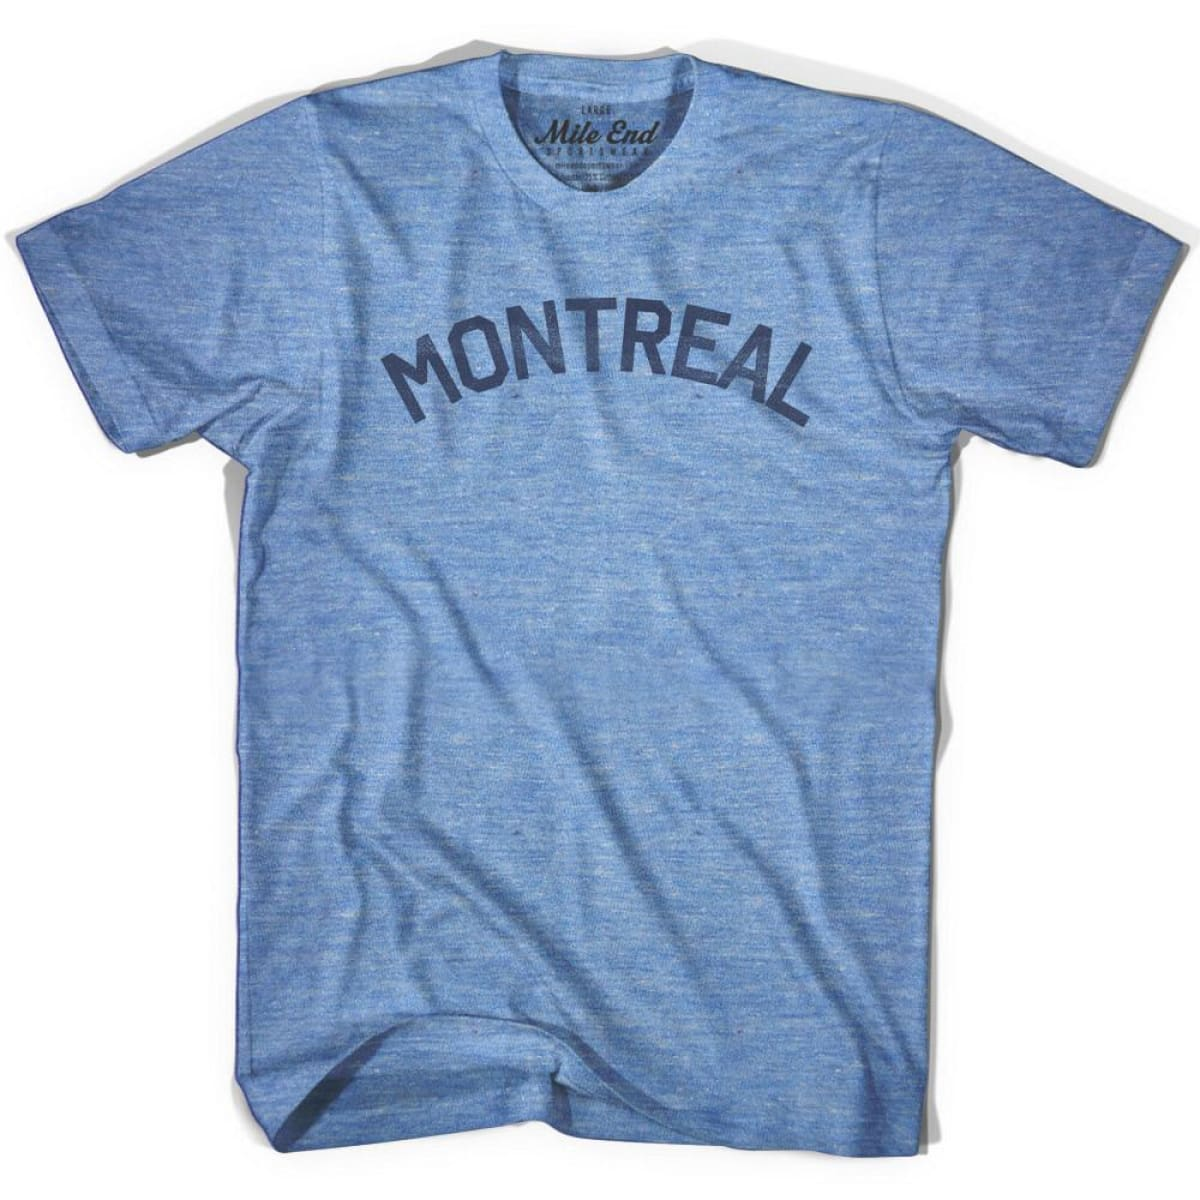 Montreal City Vintage T-shirt - Athletic Blue / Adult X-Small - Mile End City